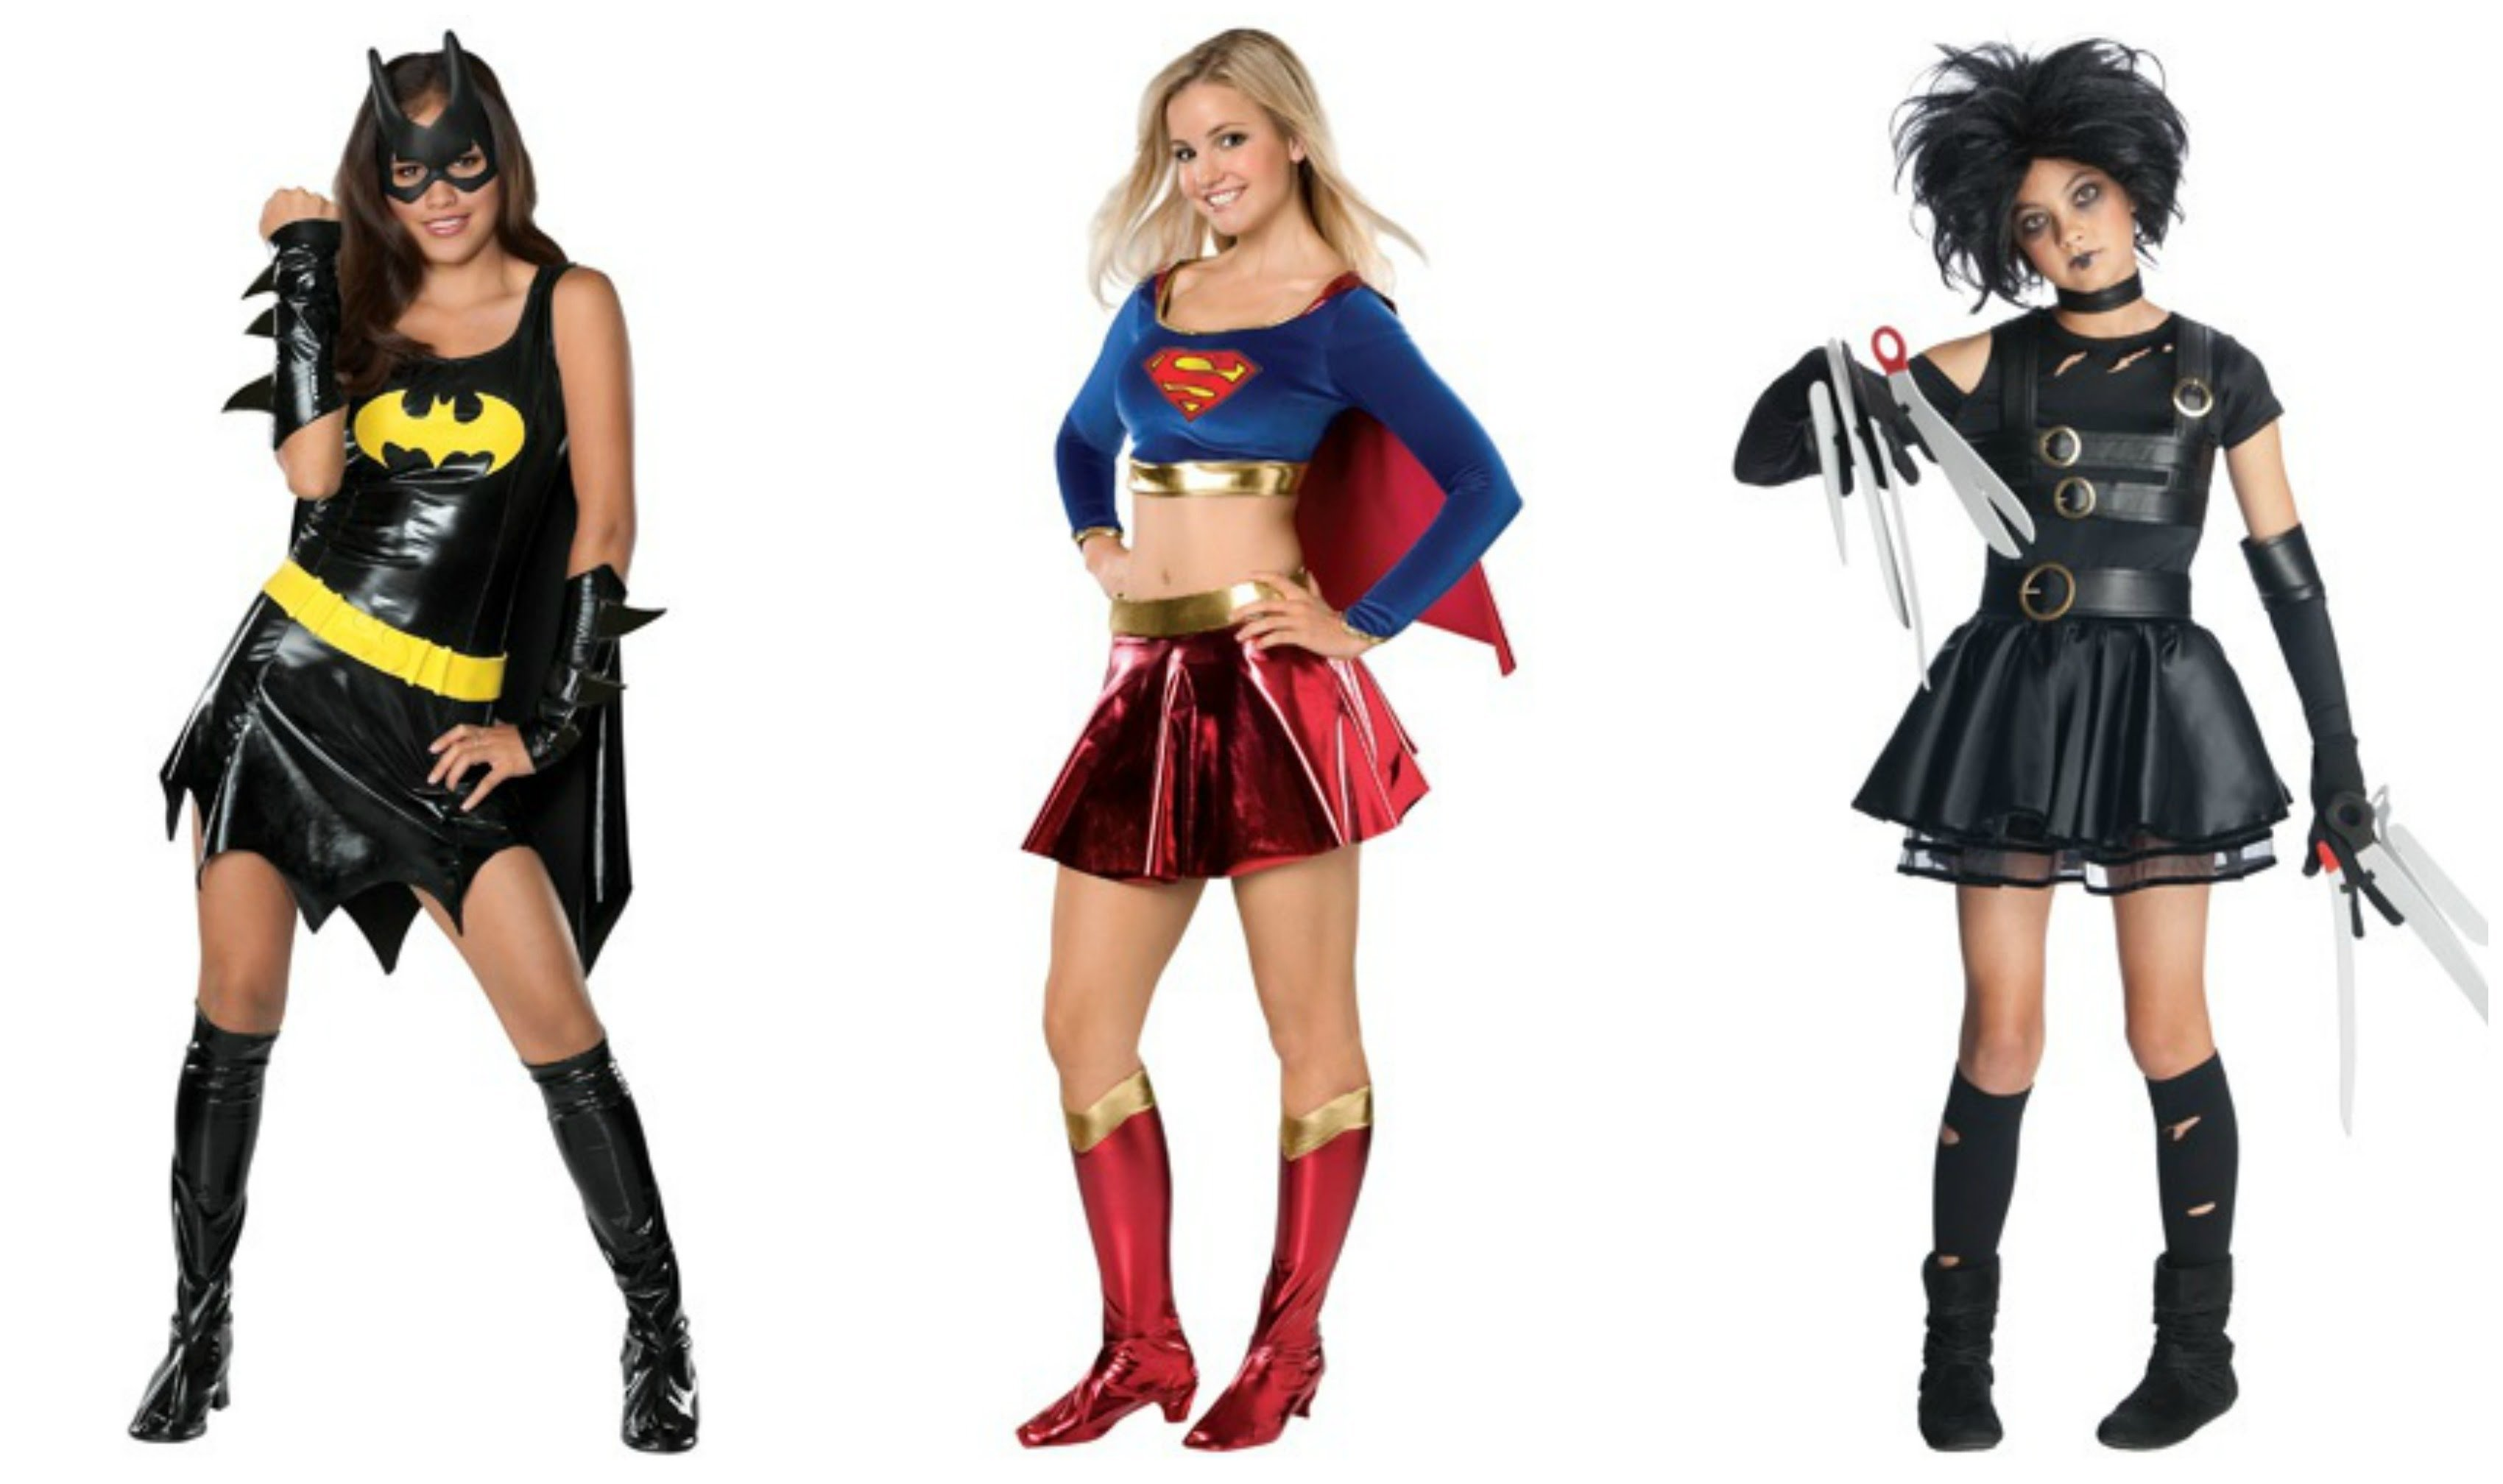 10 Fantastic Teenage Girls Halloween Costume Ideas halloween costume ideas for teens girls youtube best teenage 14 2020